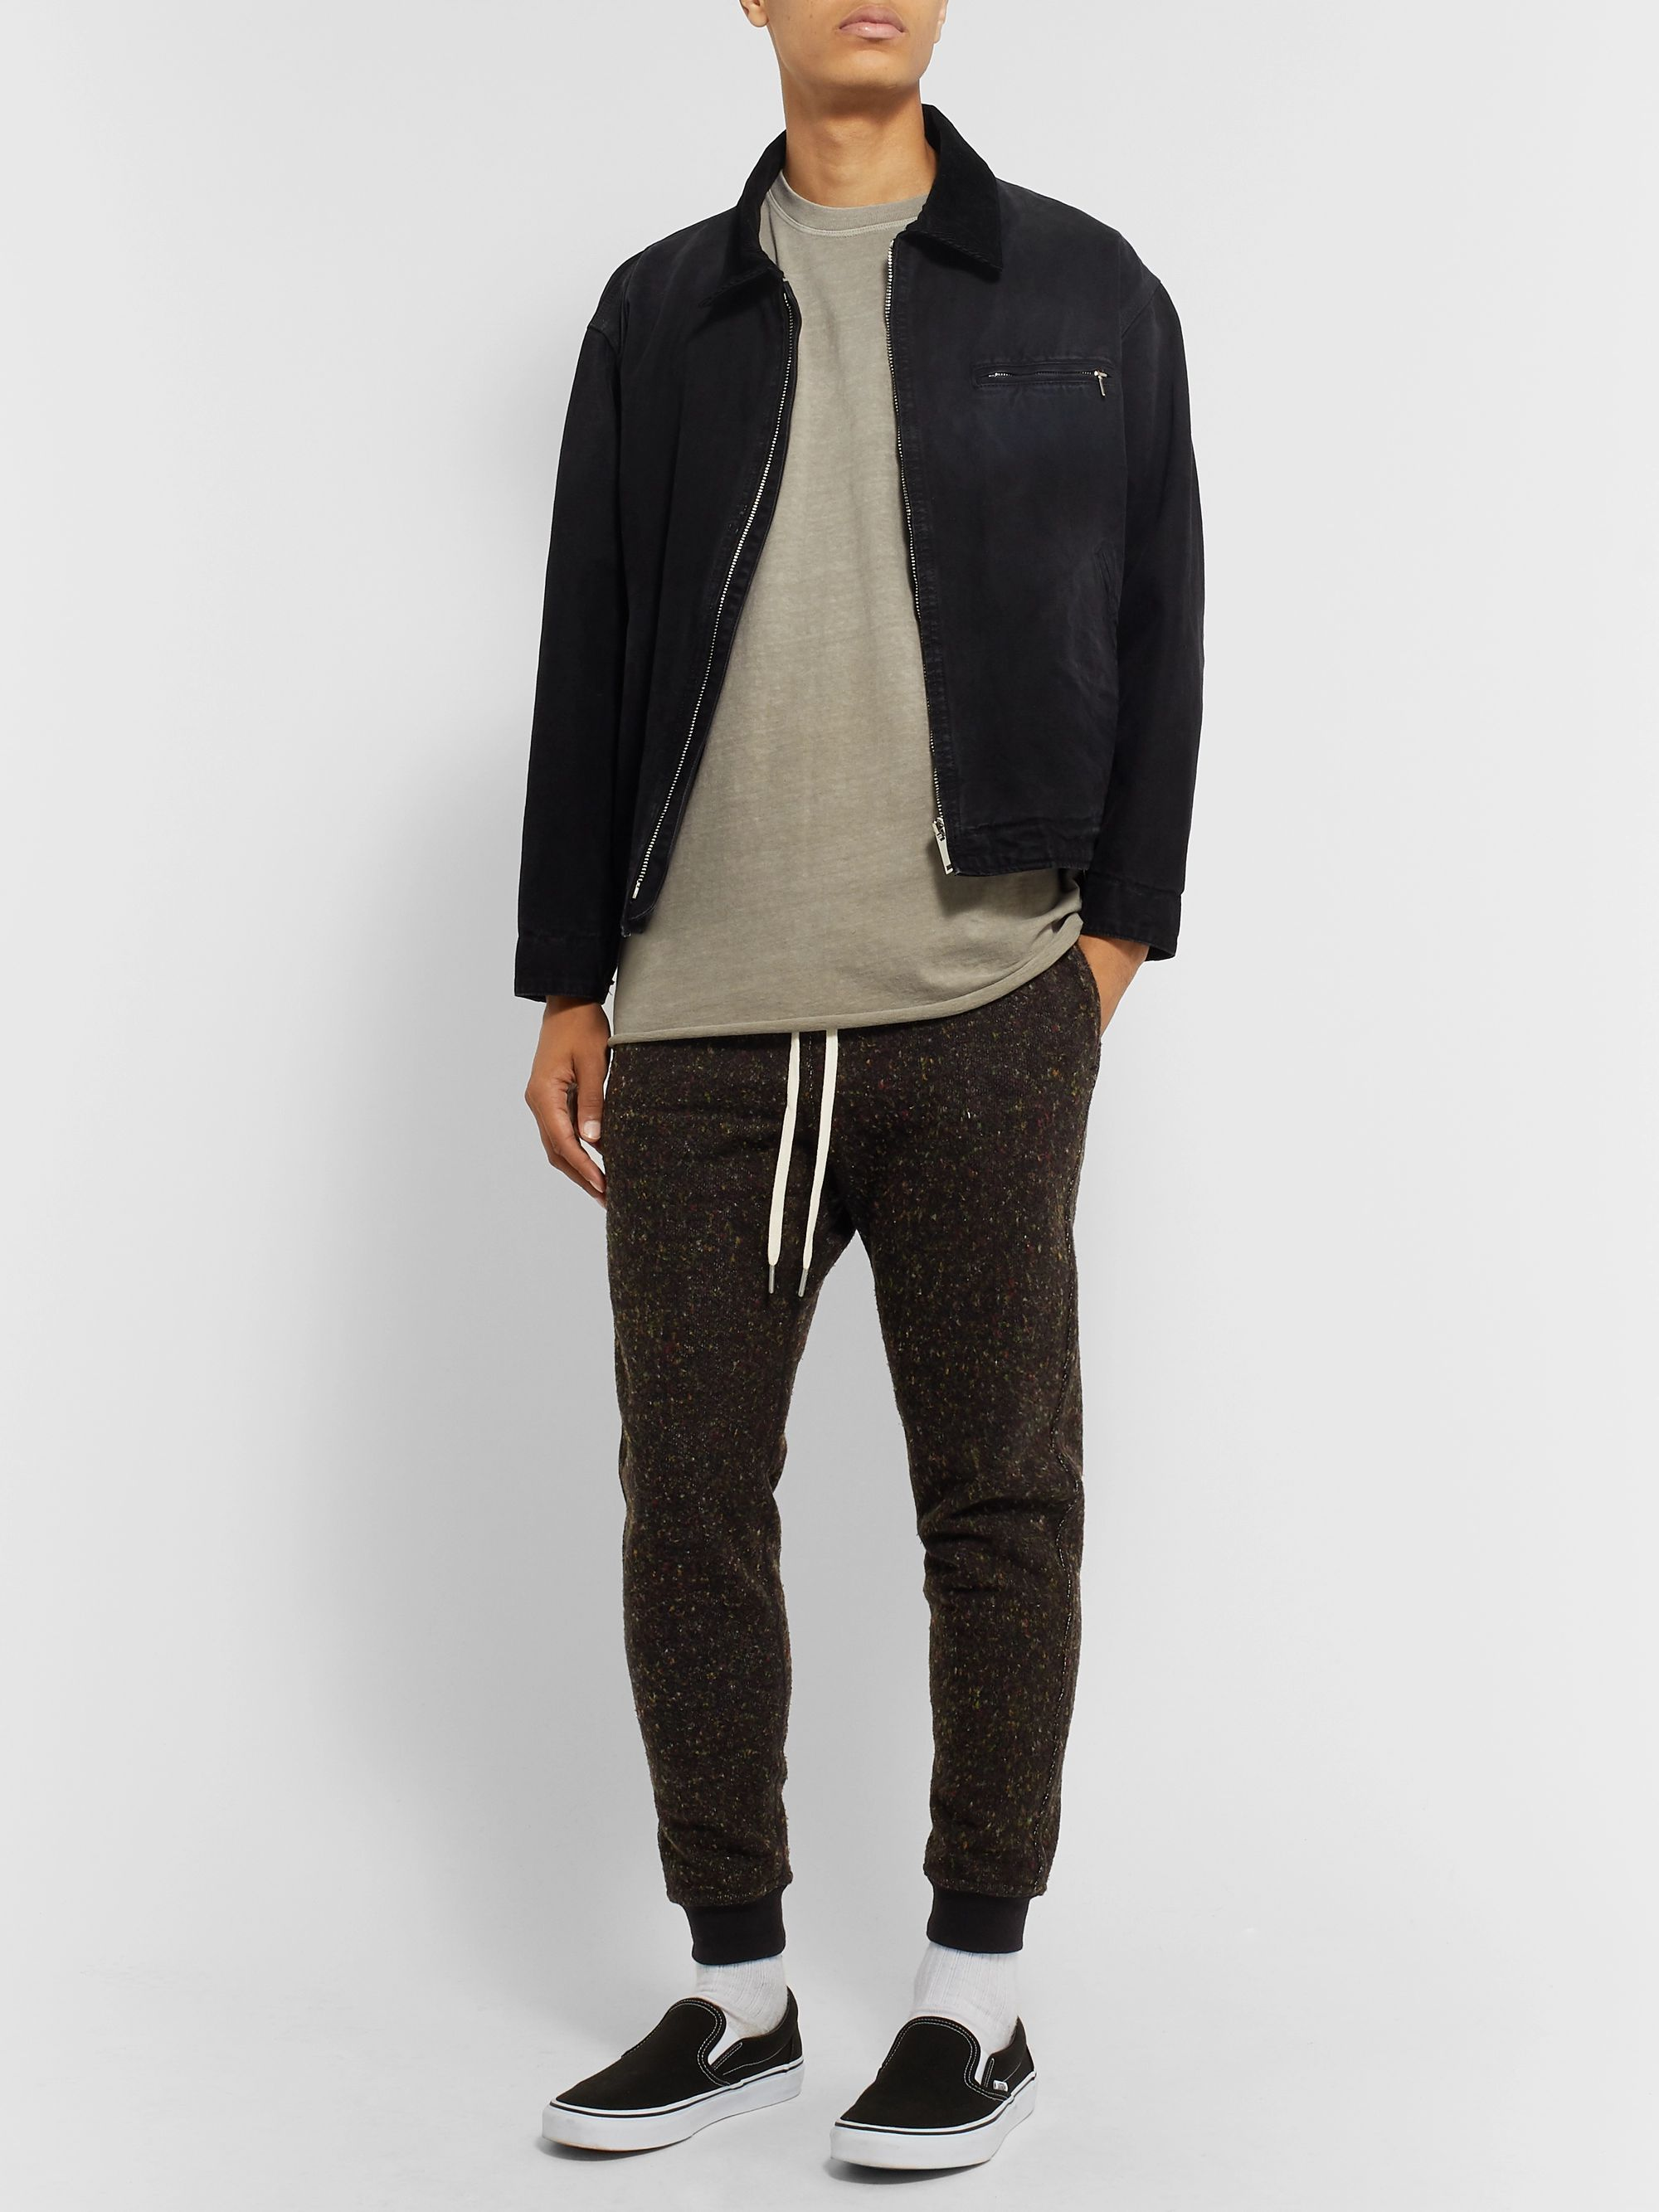 John Elliott Fireside Ebisu Tapered Knitted Sweatpants